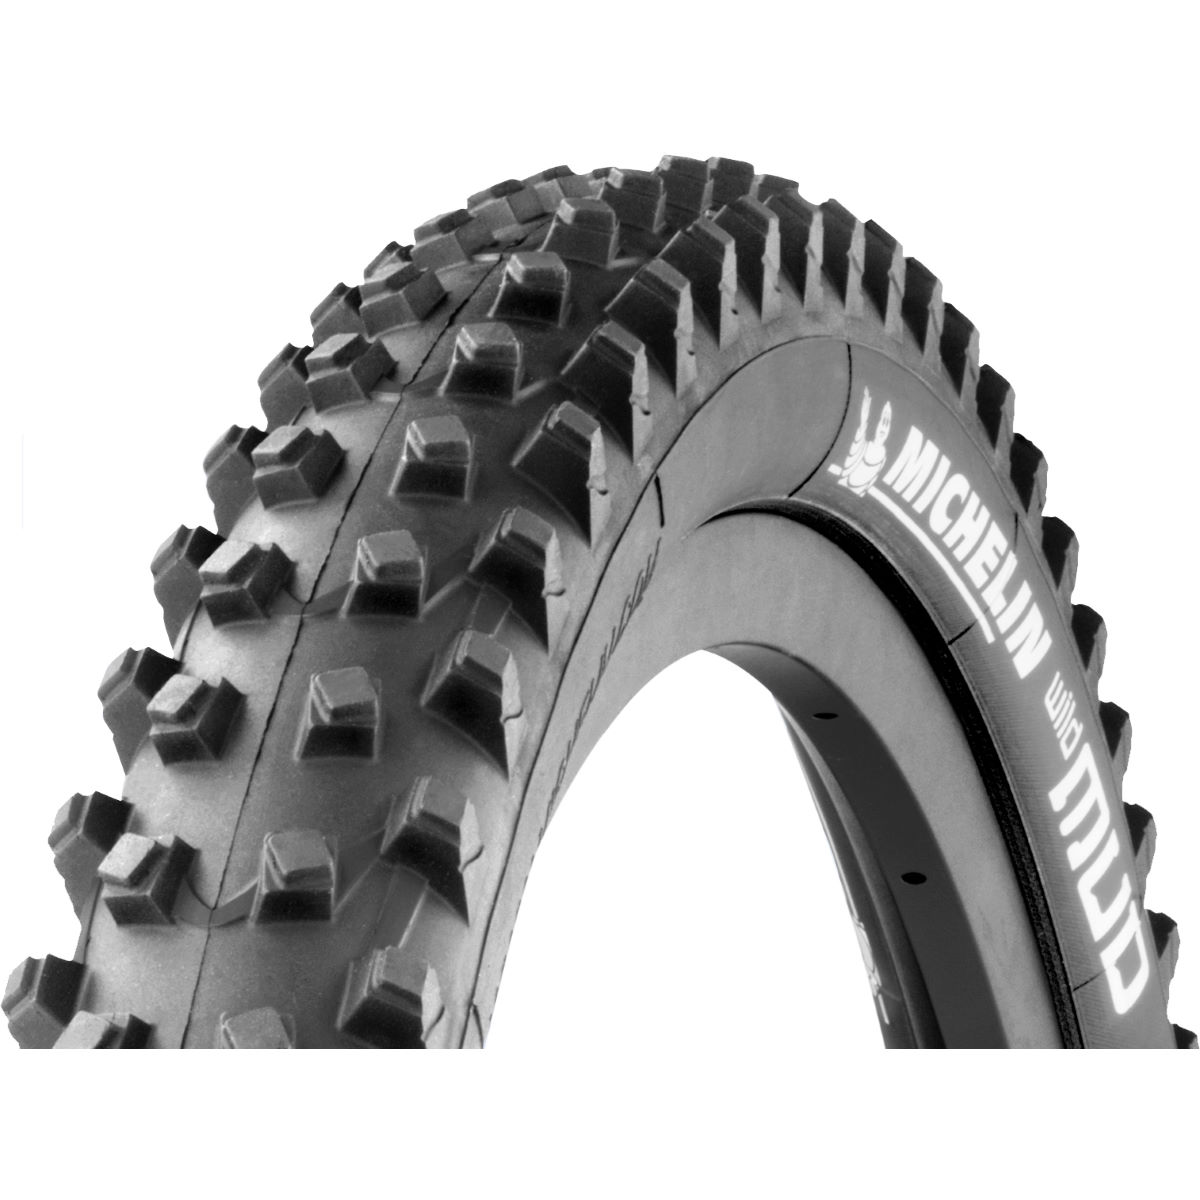 Pneu Michelin Wild Mud Advanced Reinforced 27,5 pouces (souple) - Noir